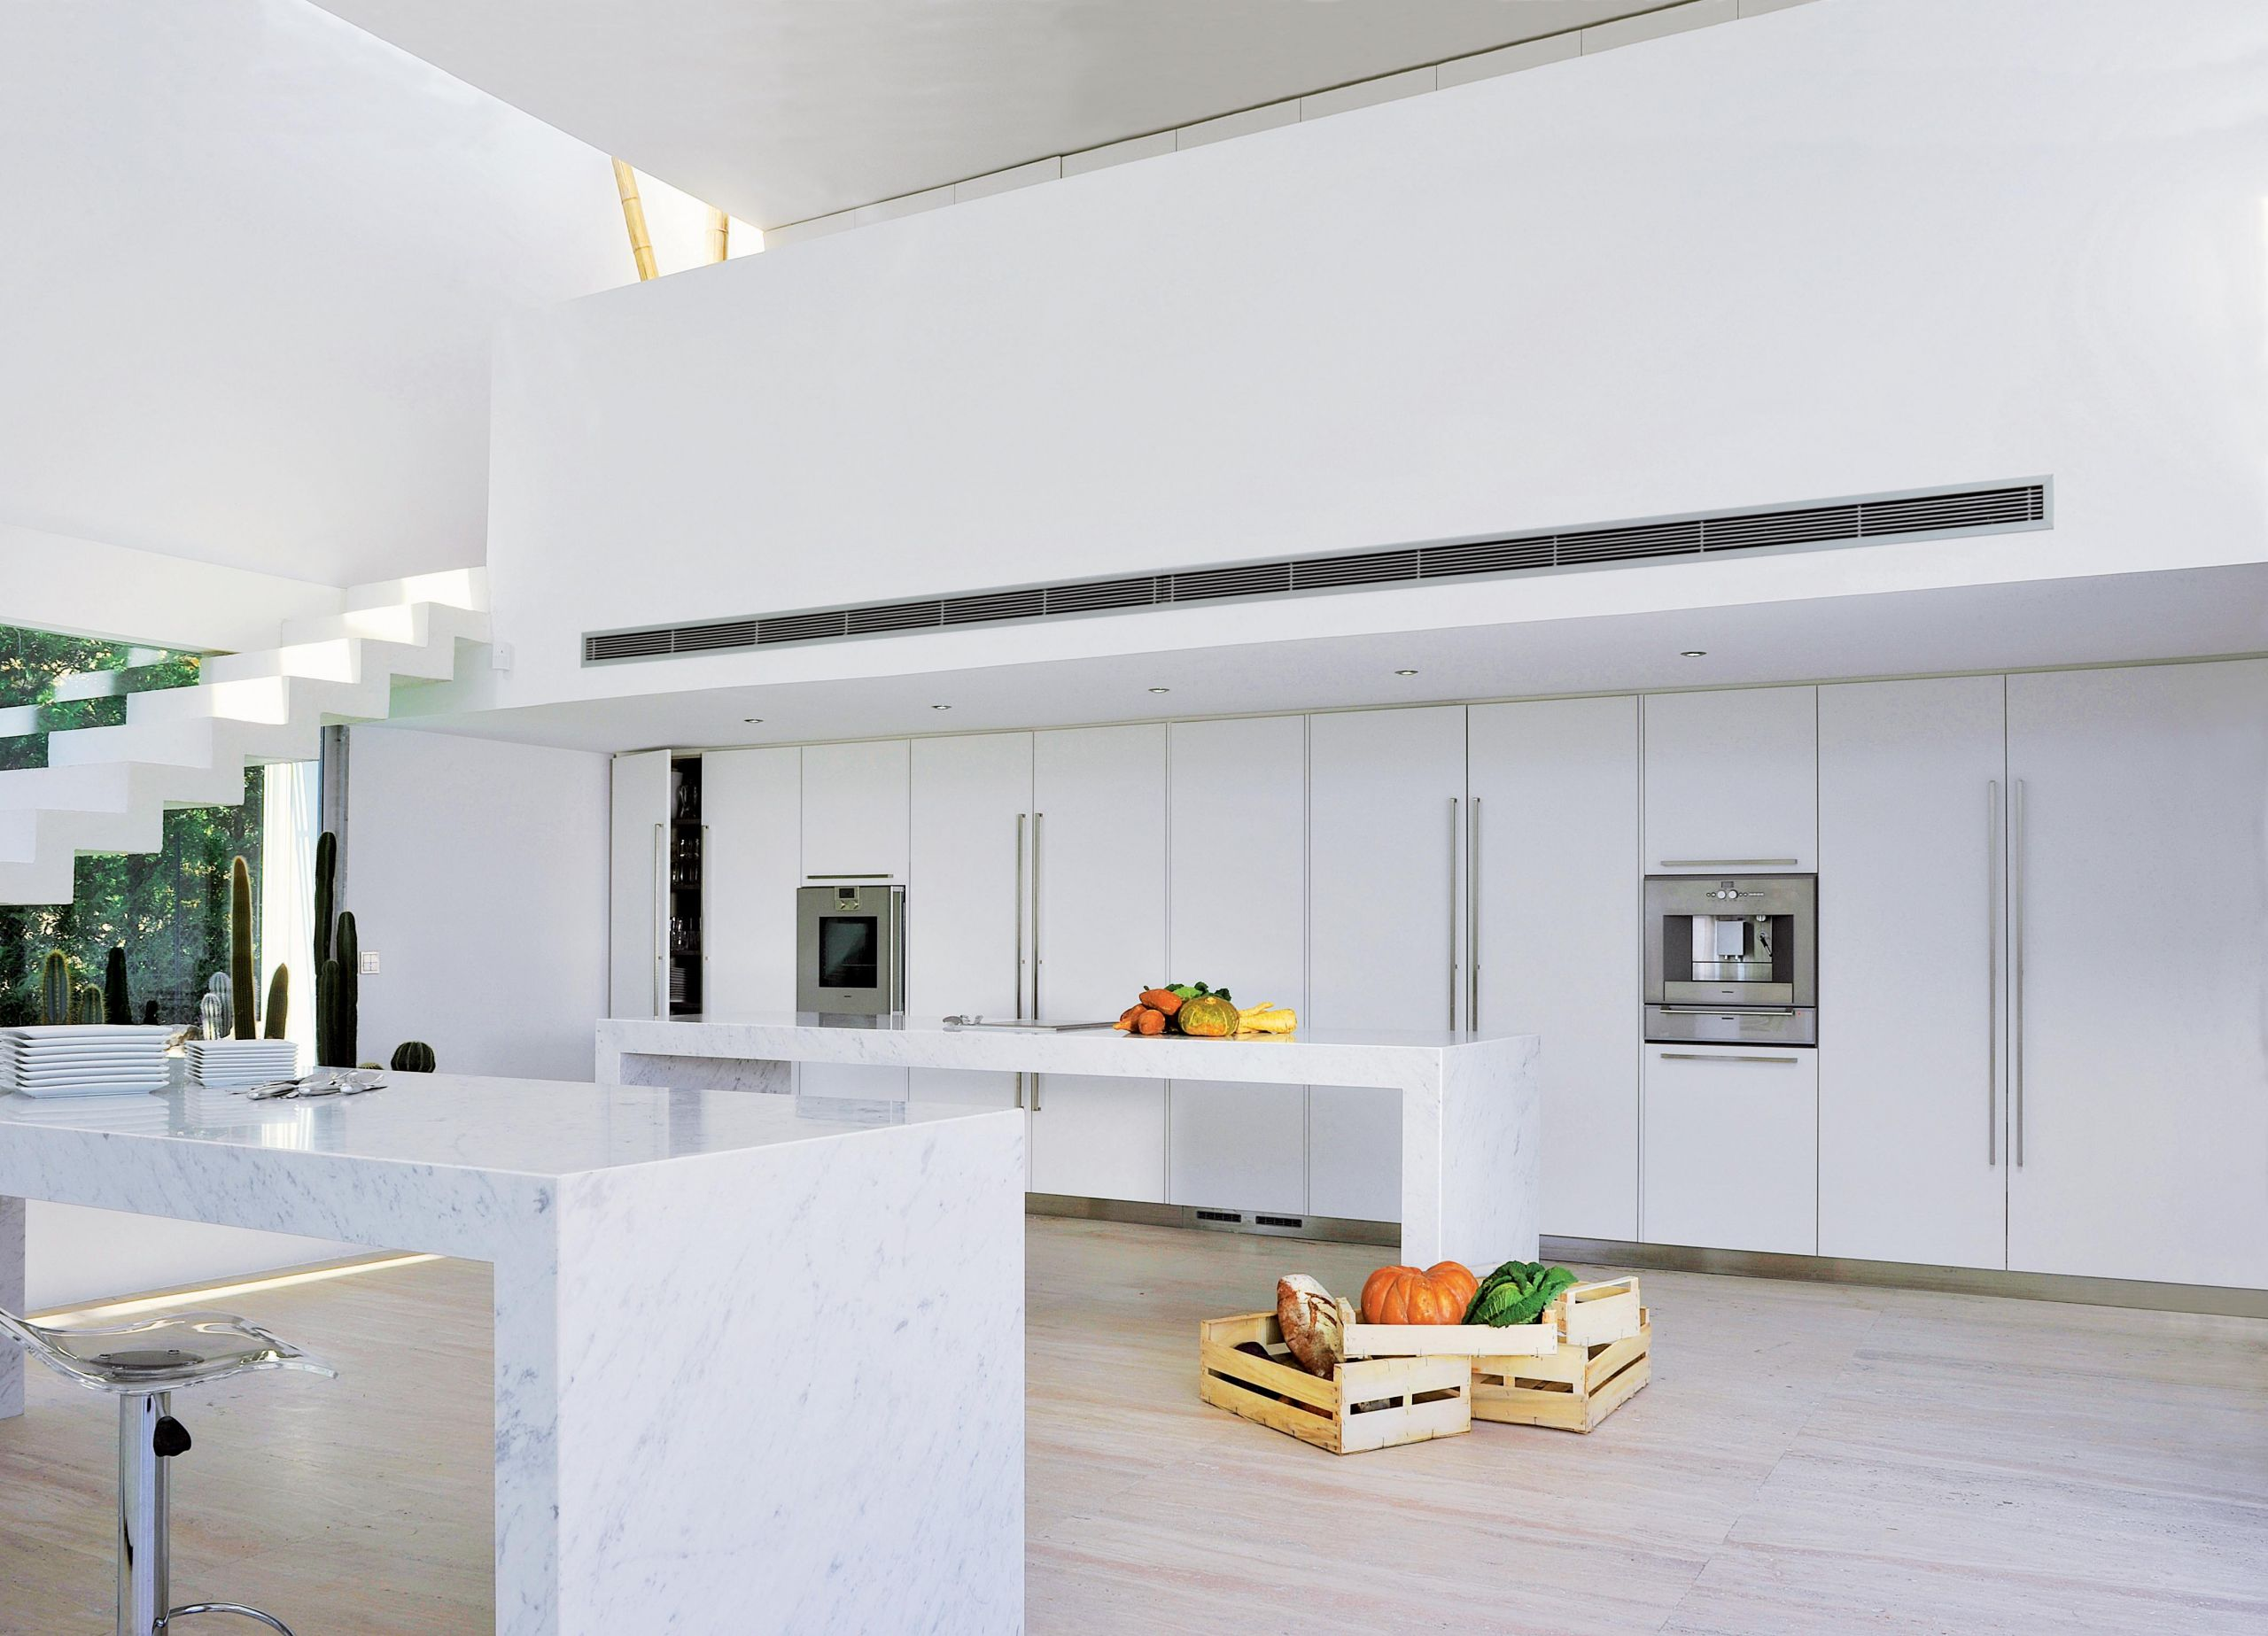 Immaculate white lacquer kitchen with Carrera marble countertops